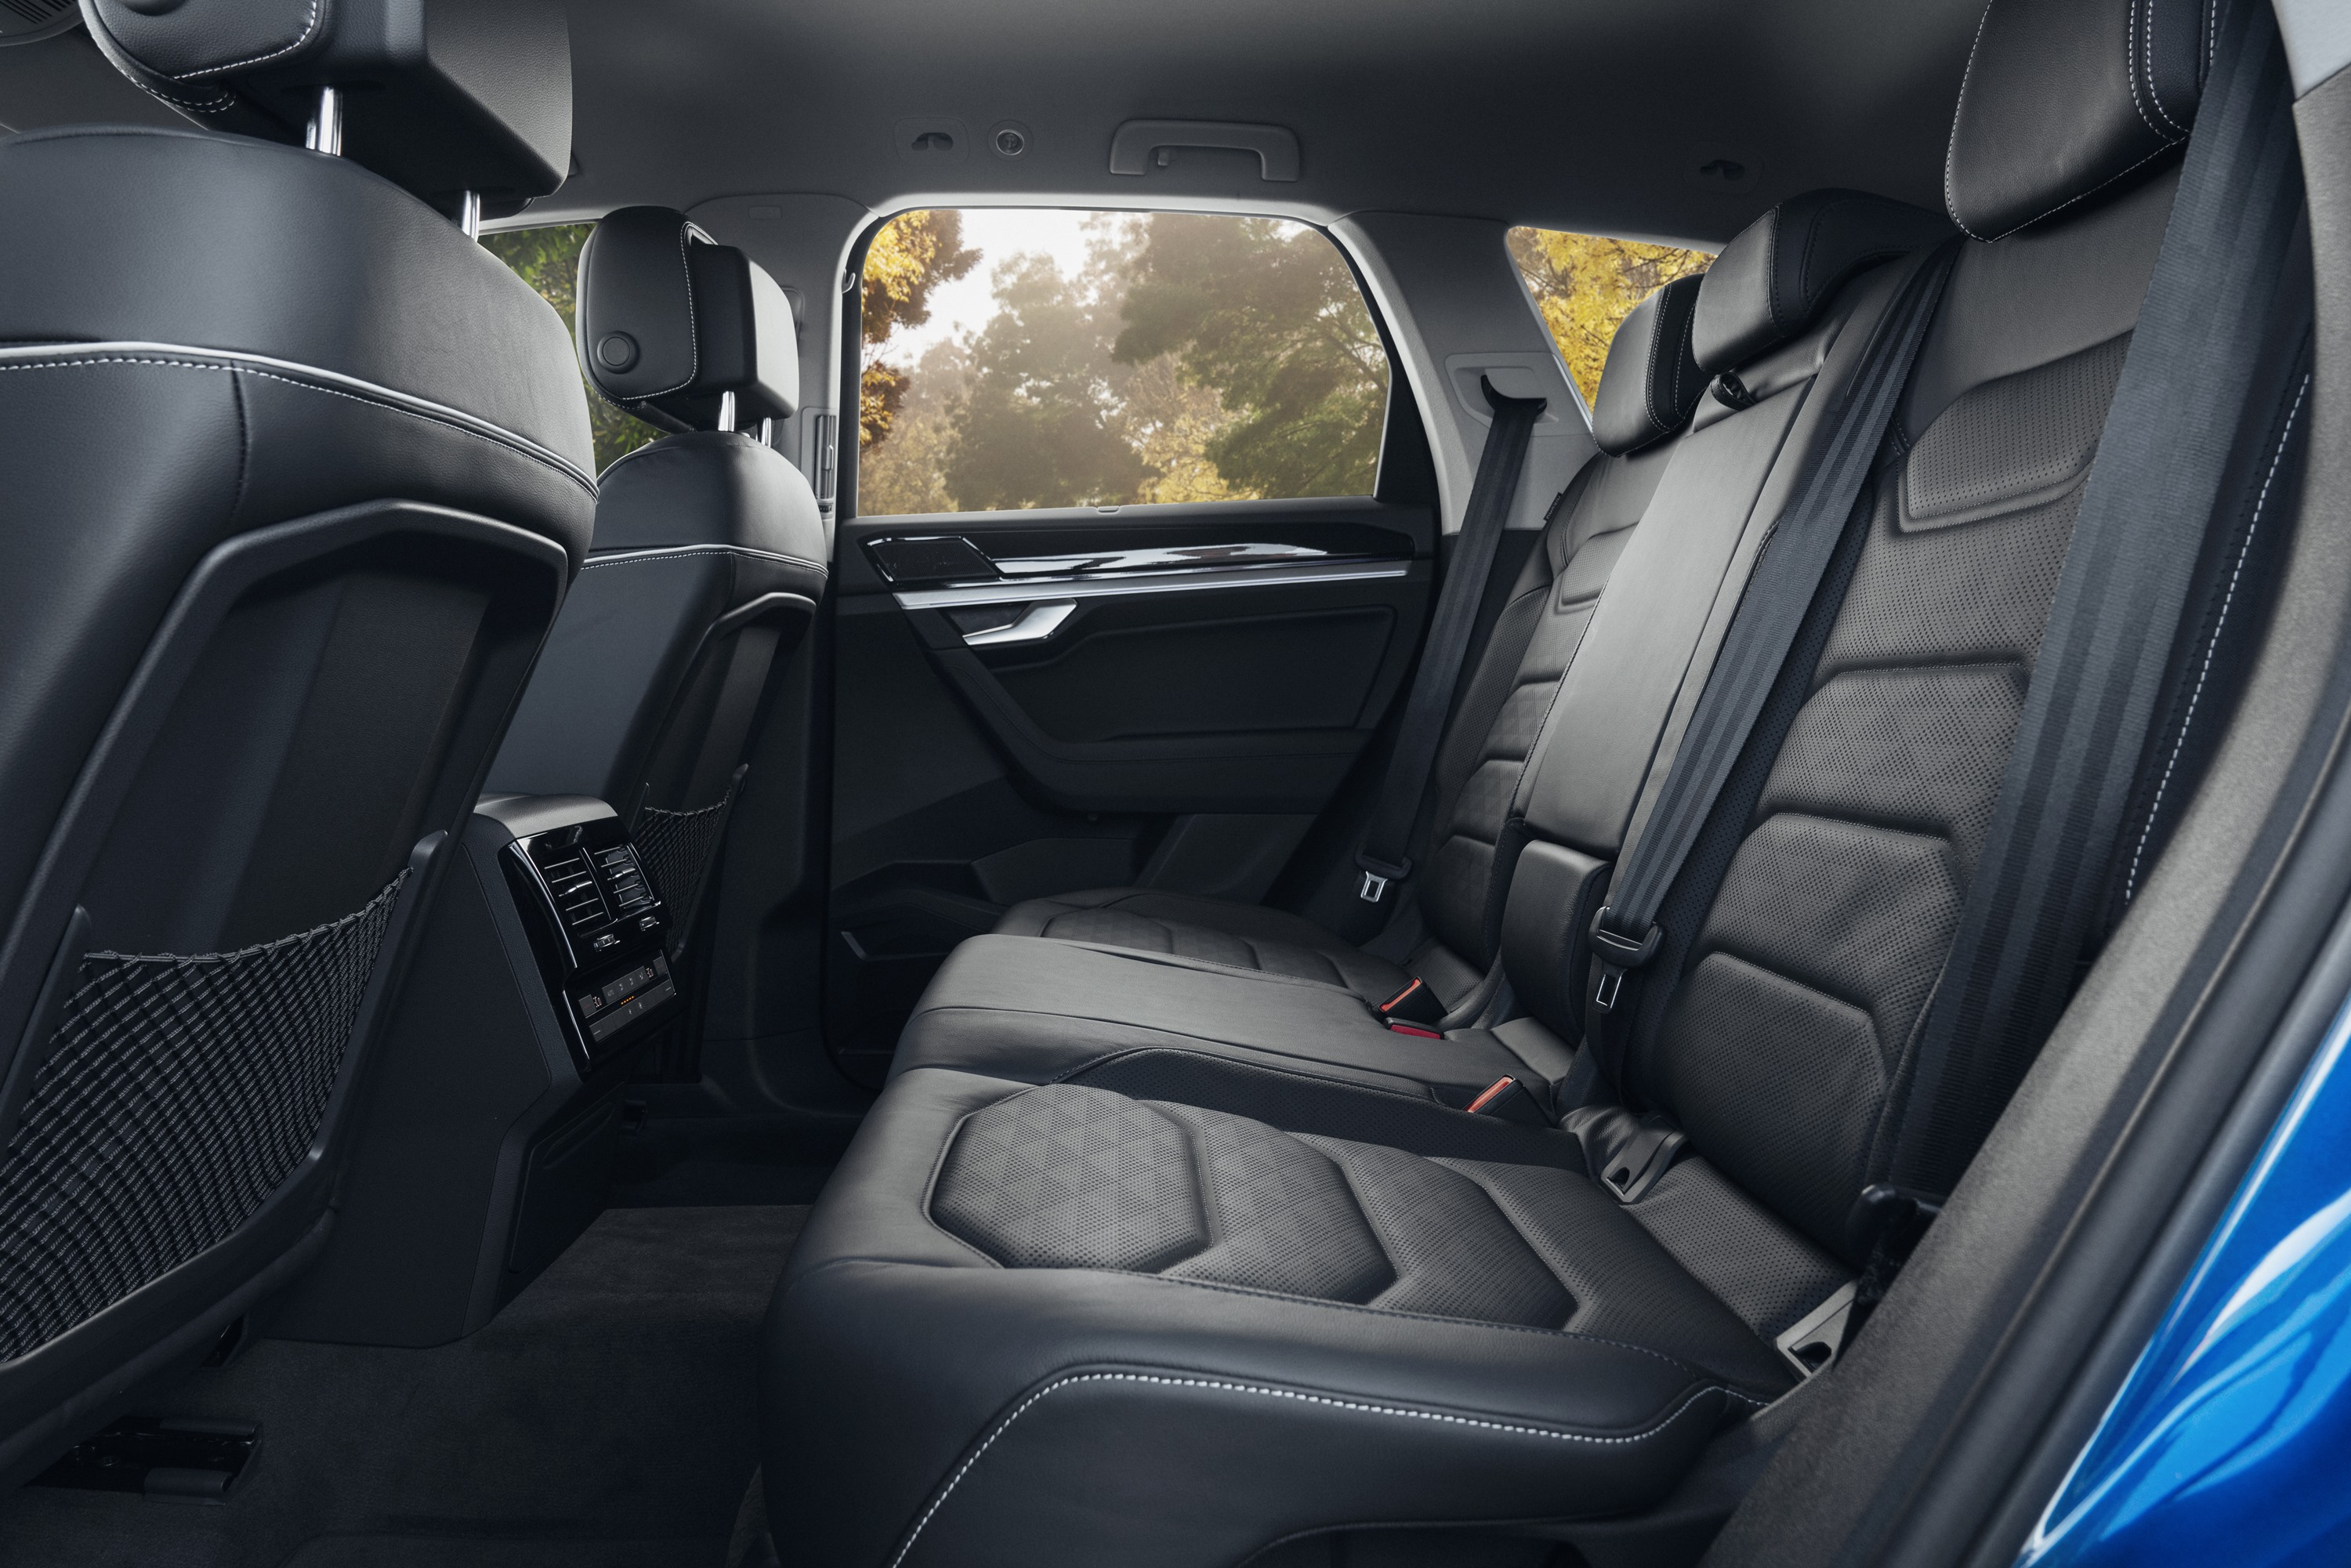 2019 VW Touareg Launch Edition 11 rear seats